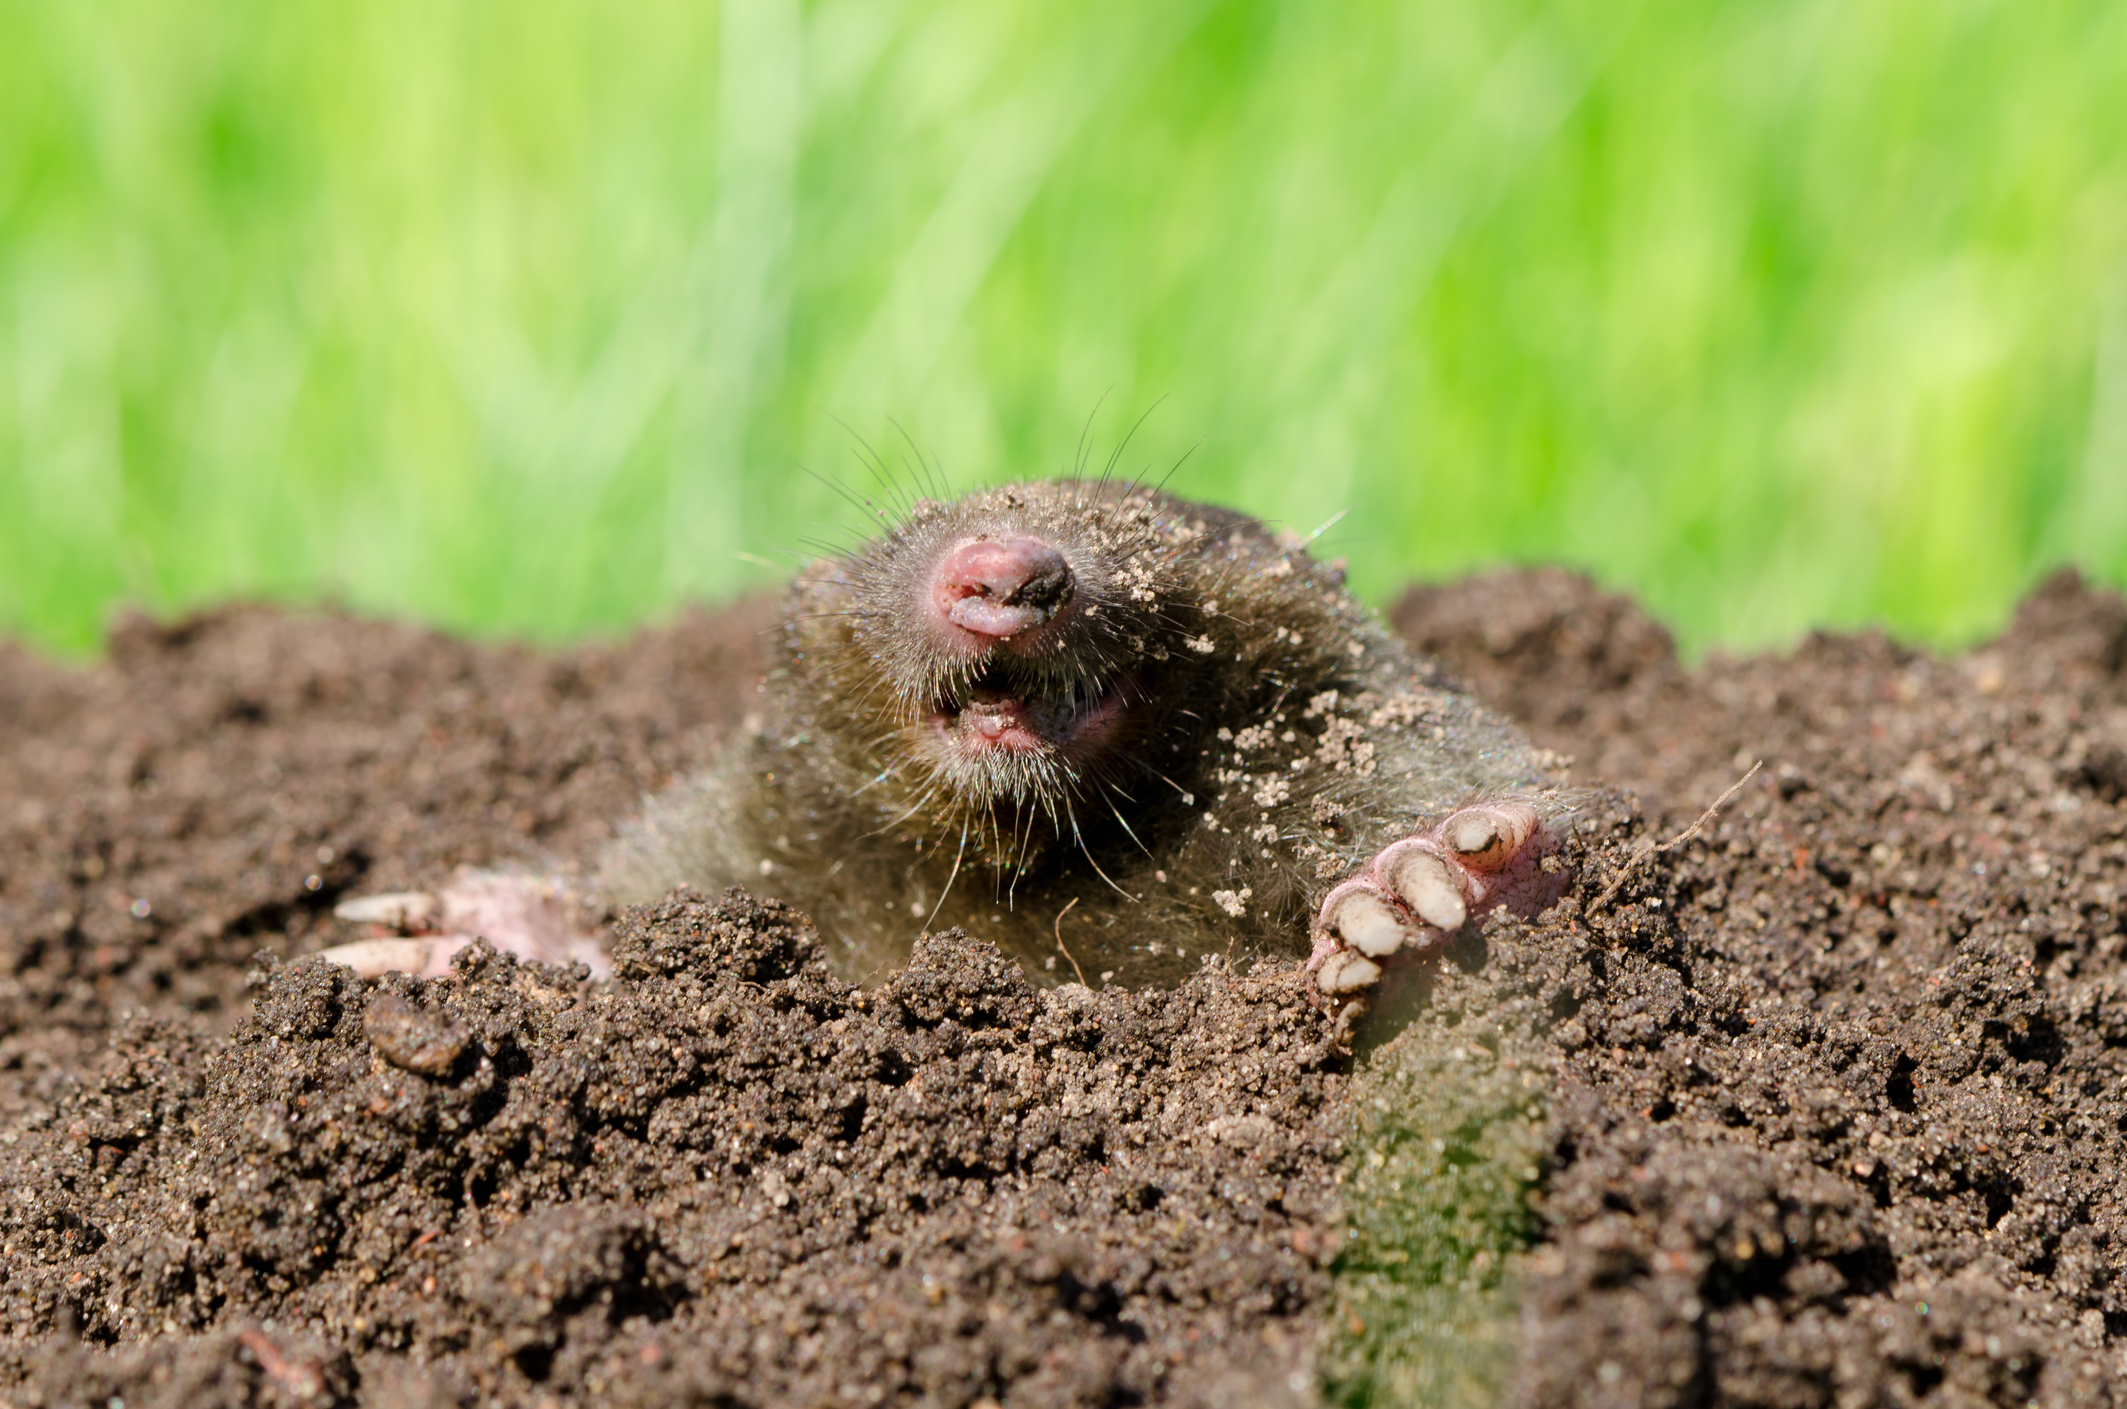 Moles spend almost the entirety of their lives underground. We discover them when we trip over one of the mole tunnels or holes that show up in our perennial beds or lawns. Stepping into a mole tunnel can twist an ankle pretty quick.